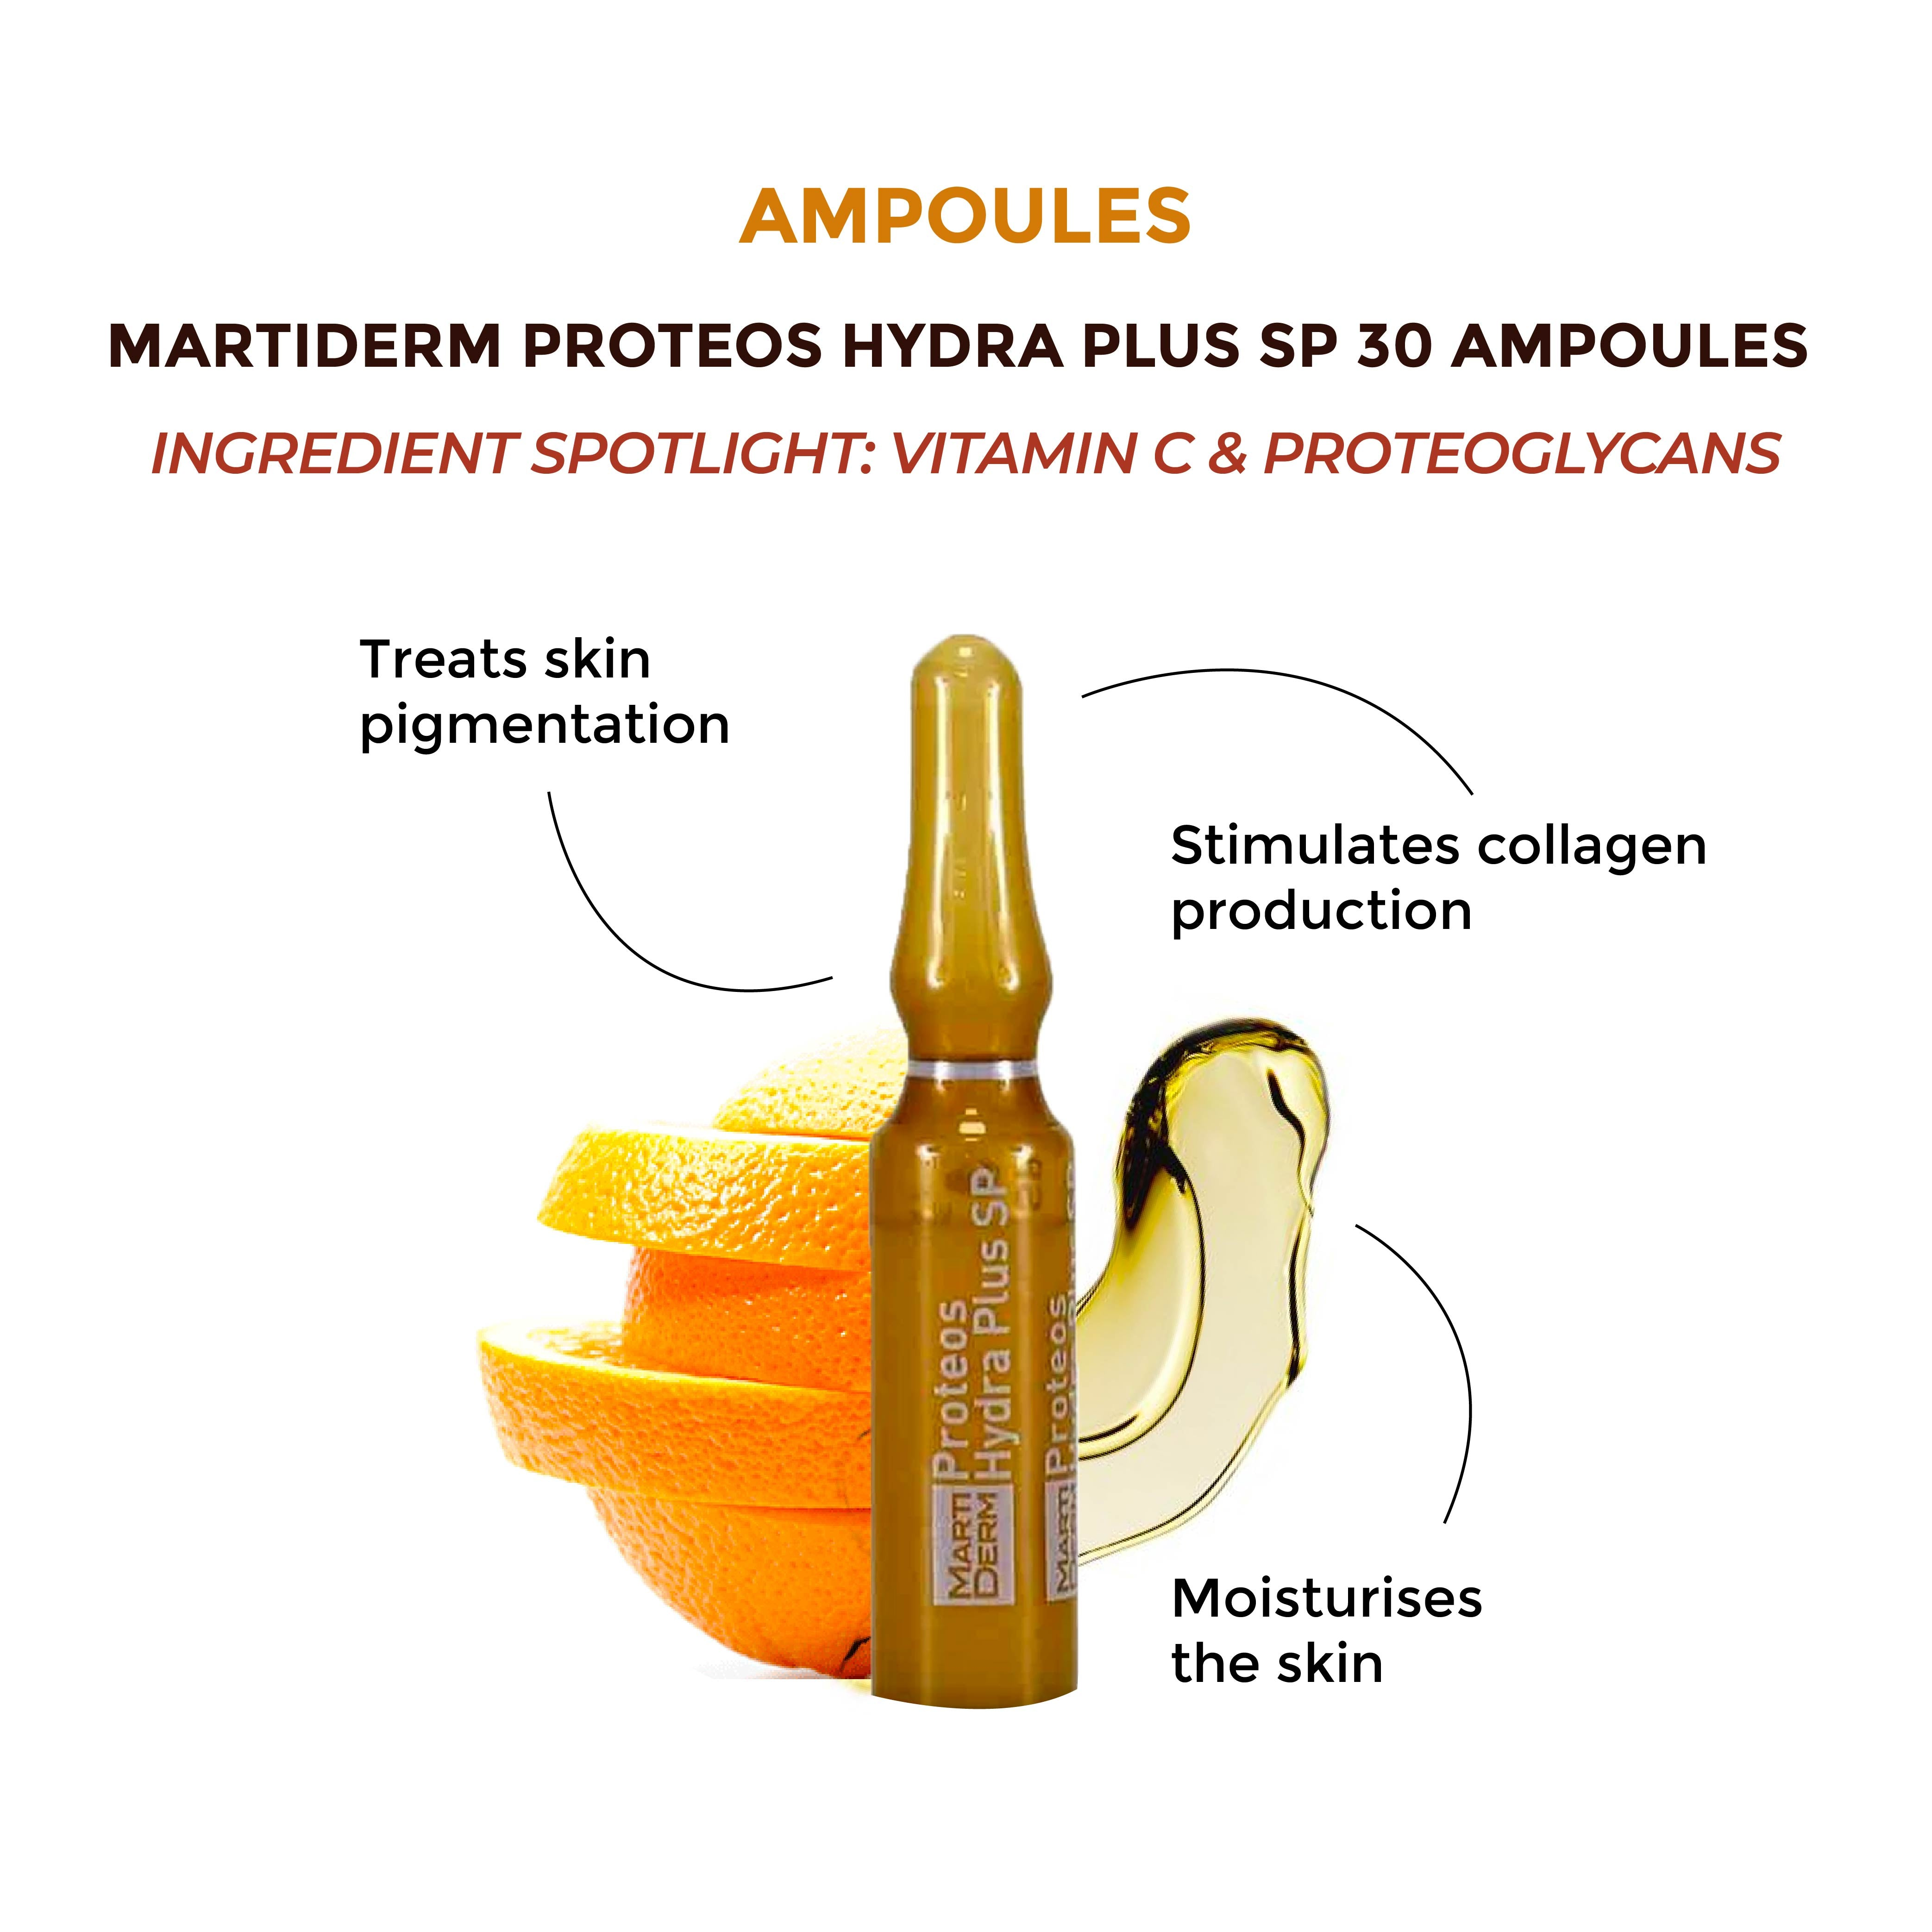 This is an image of the Martiderm Proteos Hydra Plus SP 30 Ampoules on www.sublimelife.in